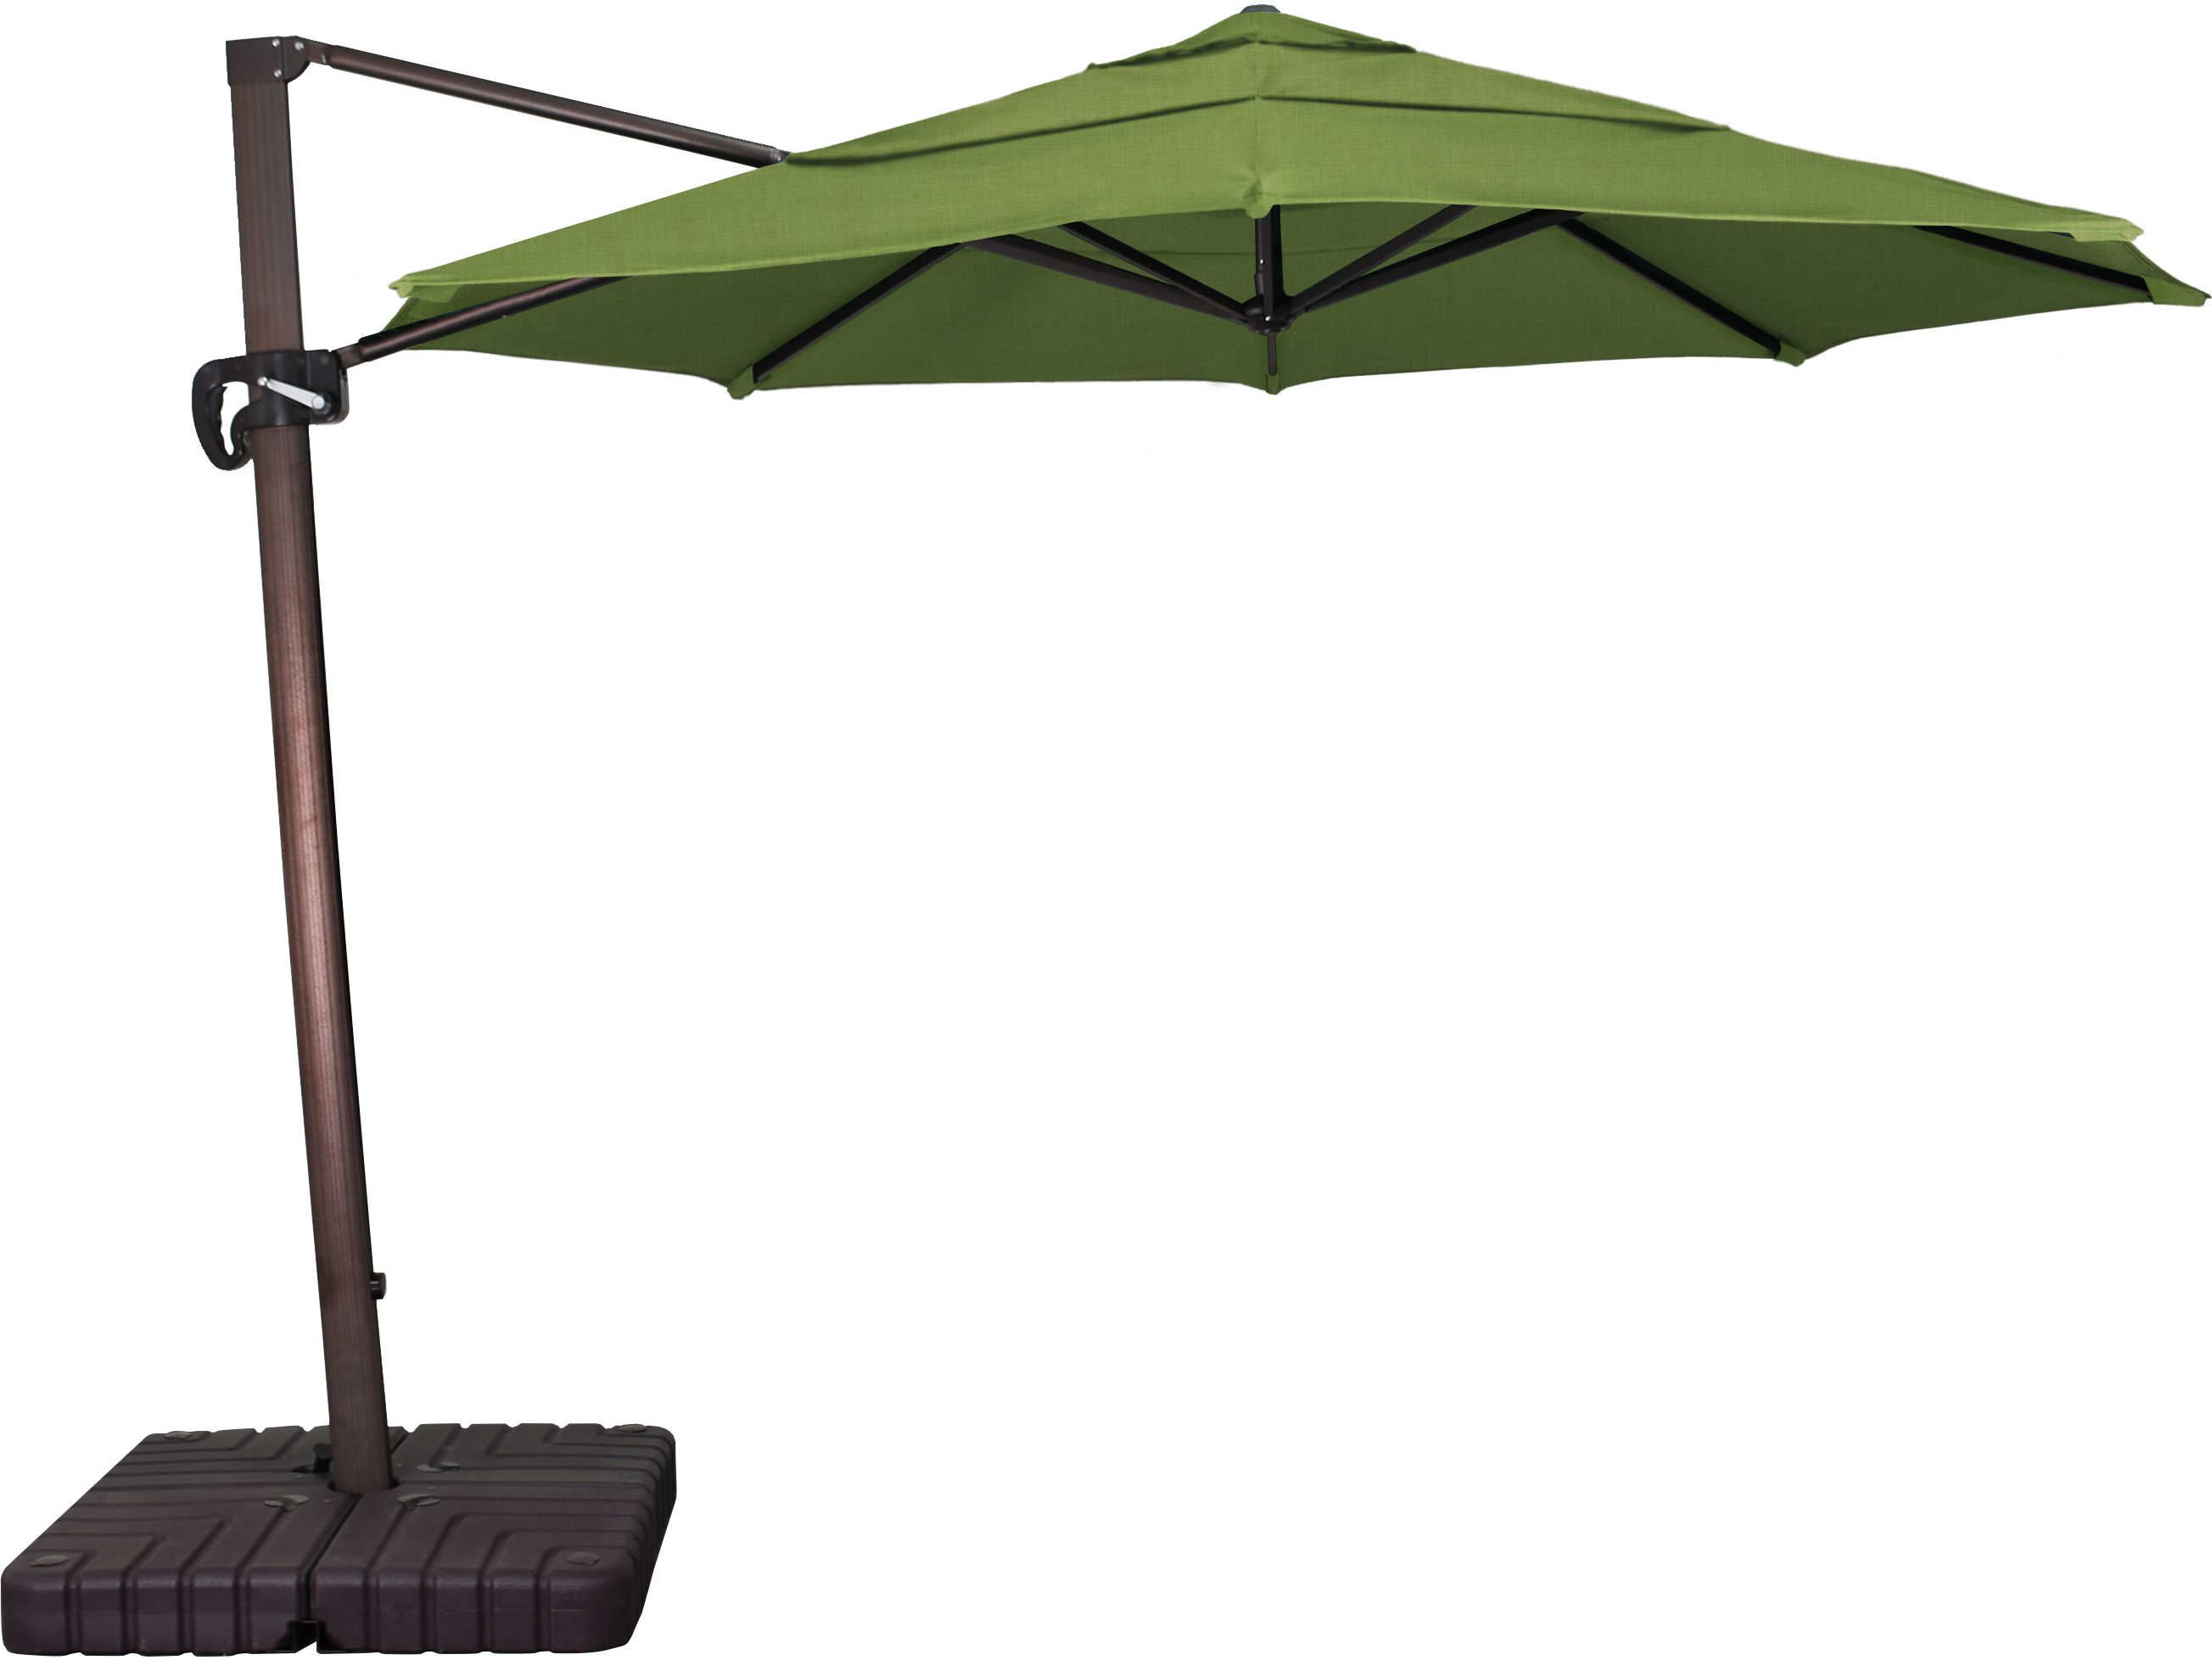 California Umbrella Cali Series 11 Foot Octagon Cantilever